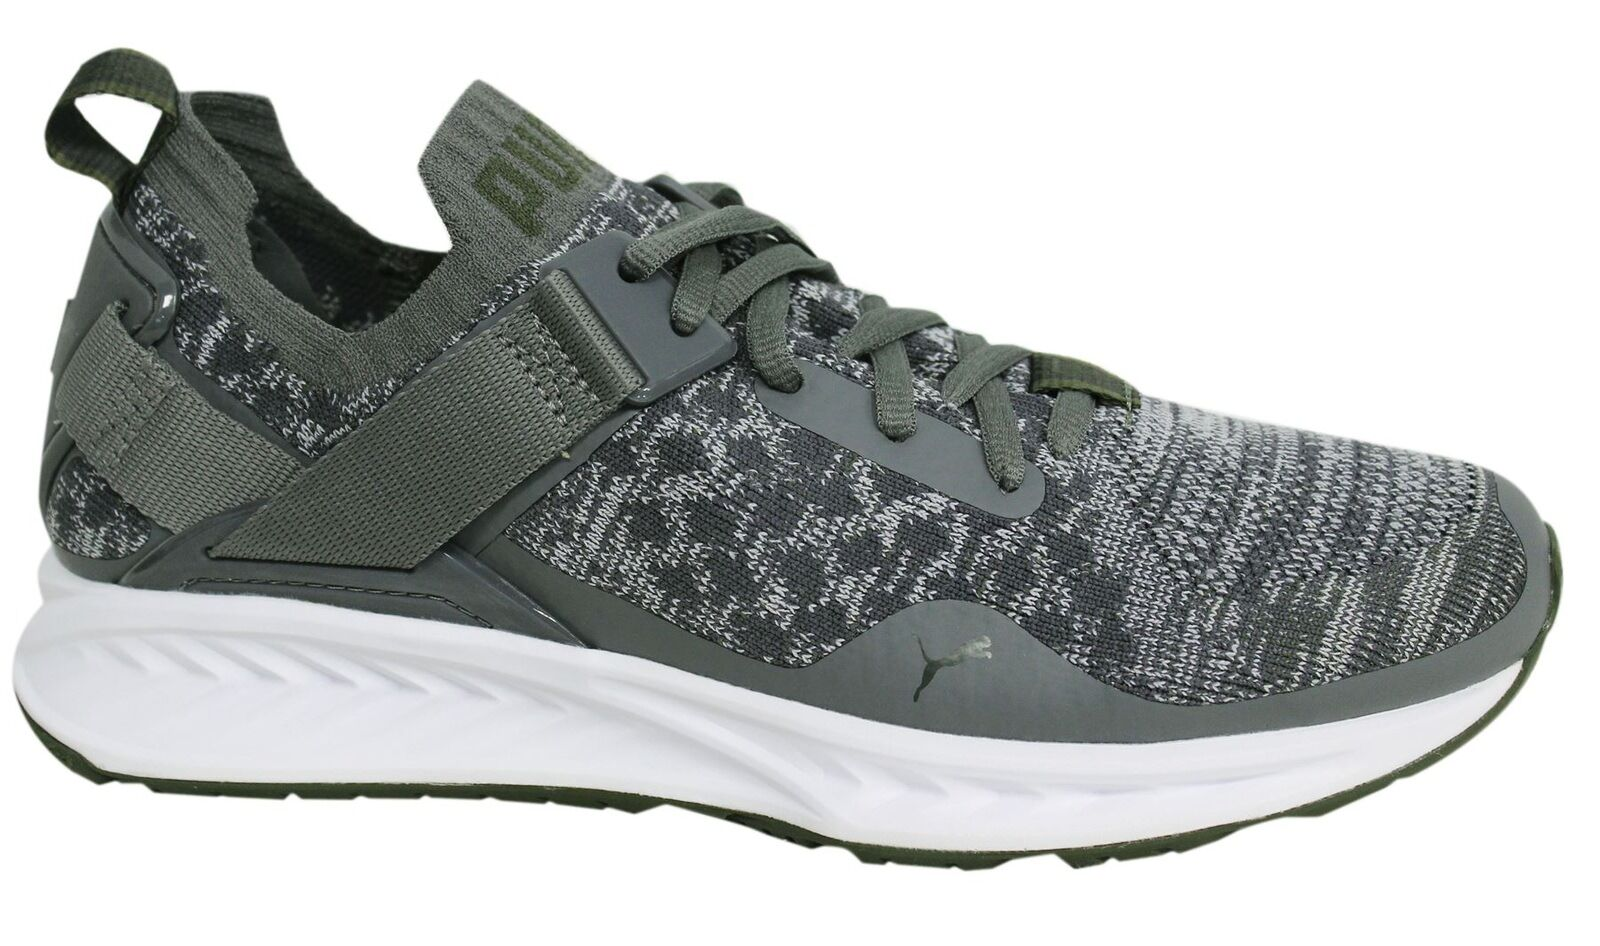 Puma Ignite evoKNIT Lo Lace Up Mens Grey Textile Trainers 189904 07 D111 Cheap women's shoes women's shoes